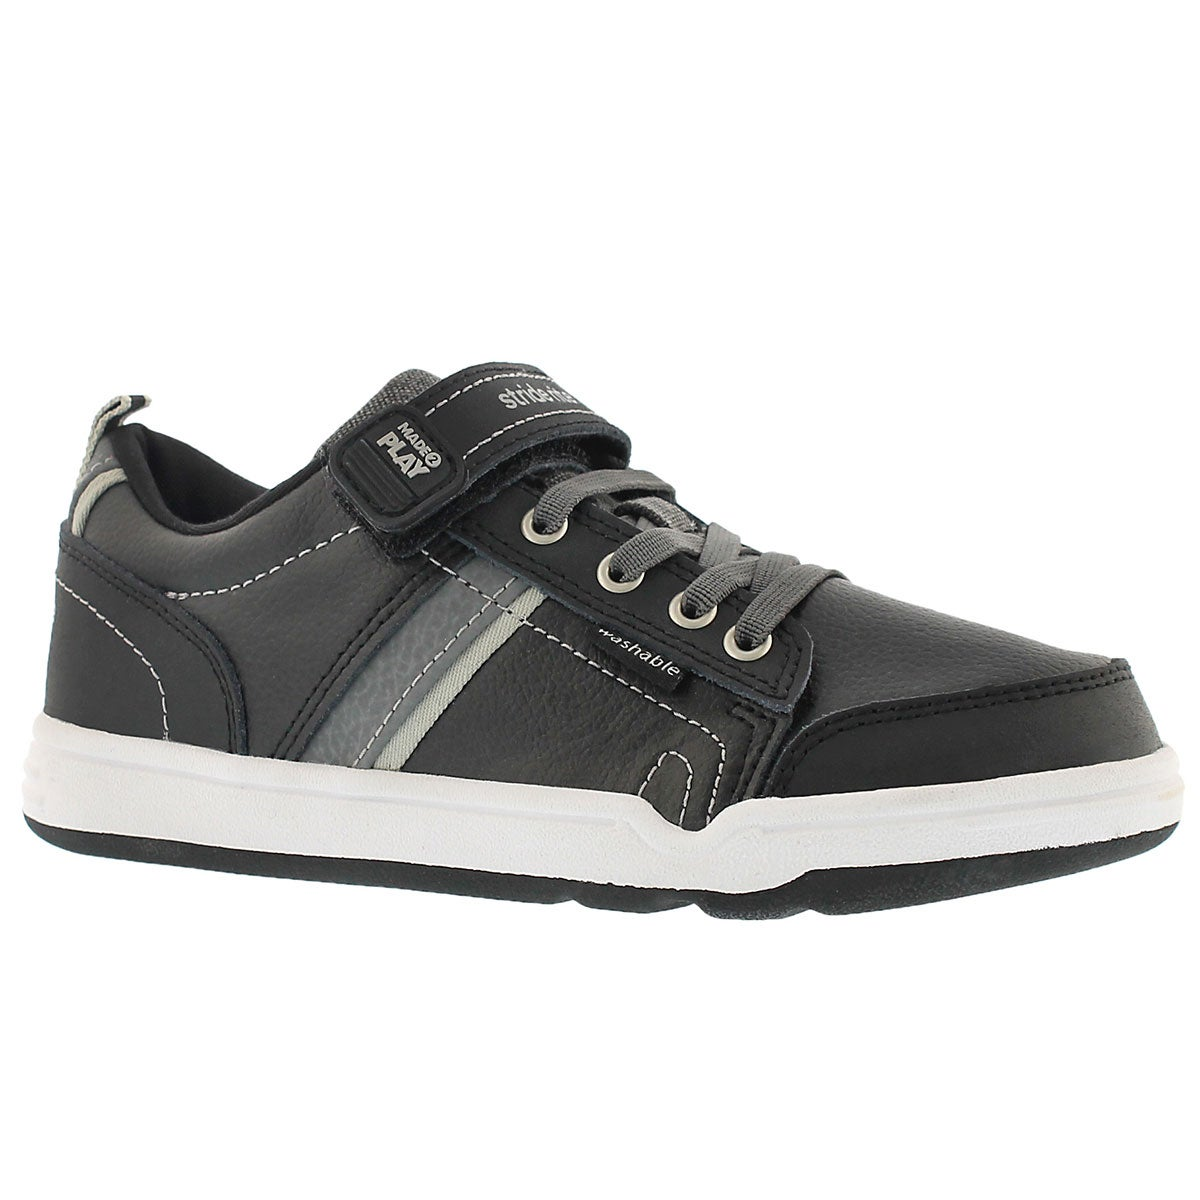 Boys' M2P KALEB black sneakers